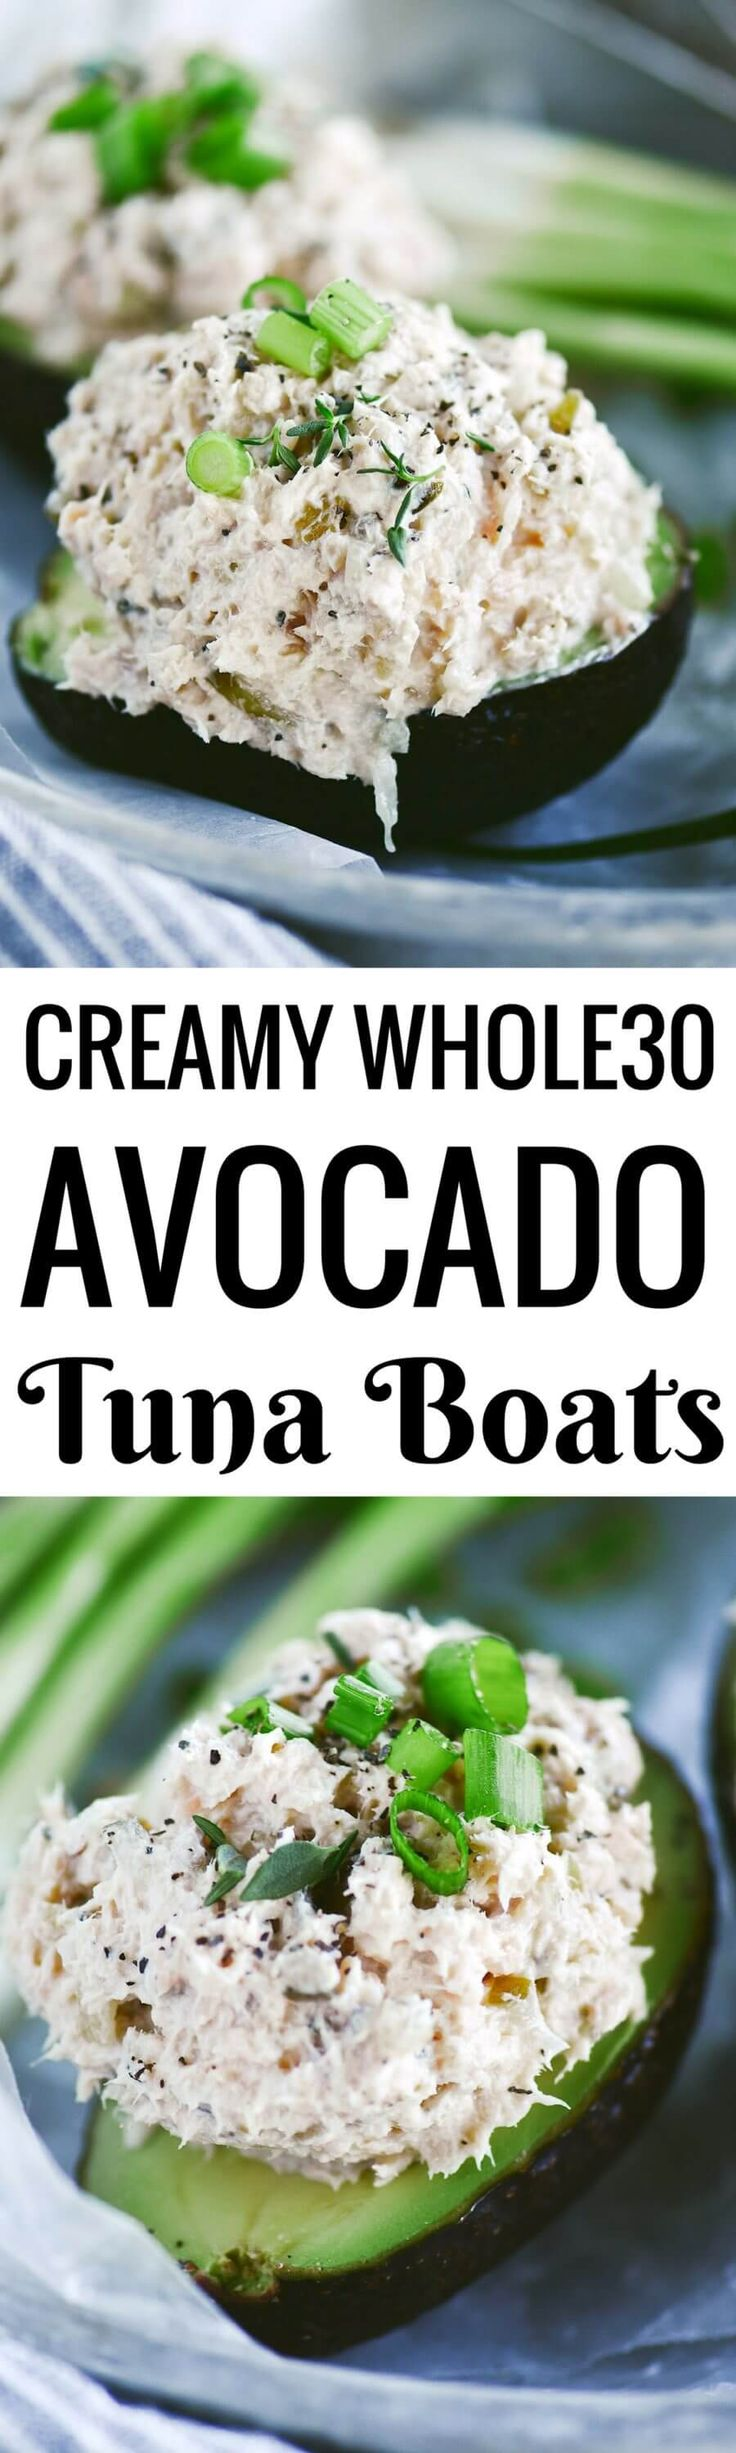 Ready for whole30 lunch in 5 minutes? Me too! Check out this recipe just for you. Creamy whole30 tuna avocado boats are topped with fresh herbs and are so healthy and easy! Whole30 lunch on the go. Whole30 meal ideas. whole30 meal plan. Easy whole30 dinner recipes. Easy whole30 dinner recipes. Whole30 recipes. Whole30 lunch. Whole30 meal planning. Whole30 meal prep. Healthy paleo meals. Healthy Whole30 recipes. Easy Whole30 recipes. Easy whole30 dinner recipes.